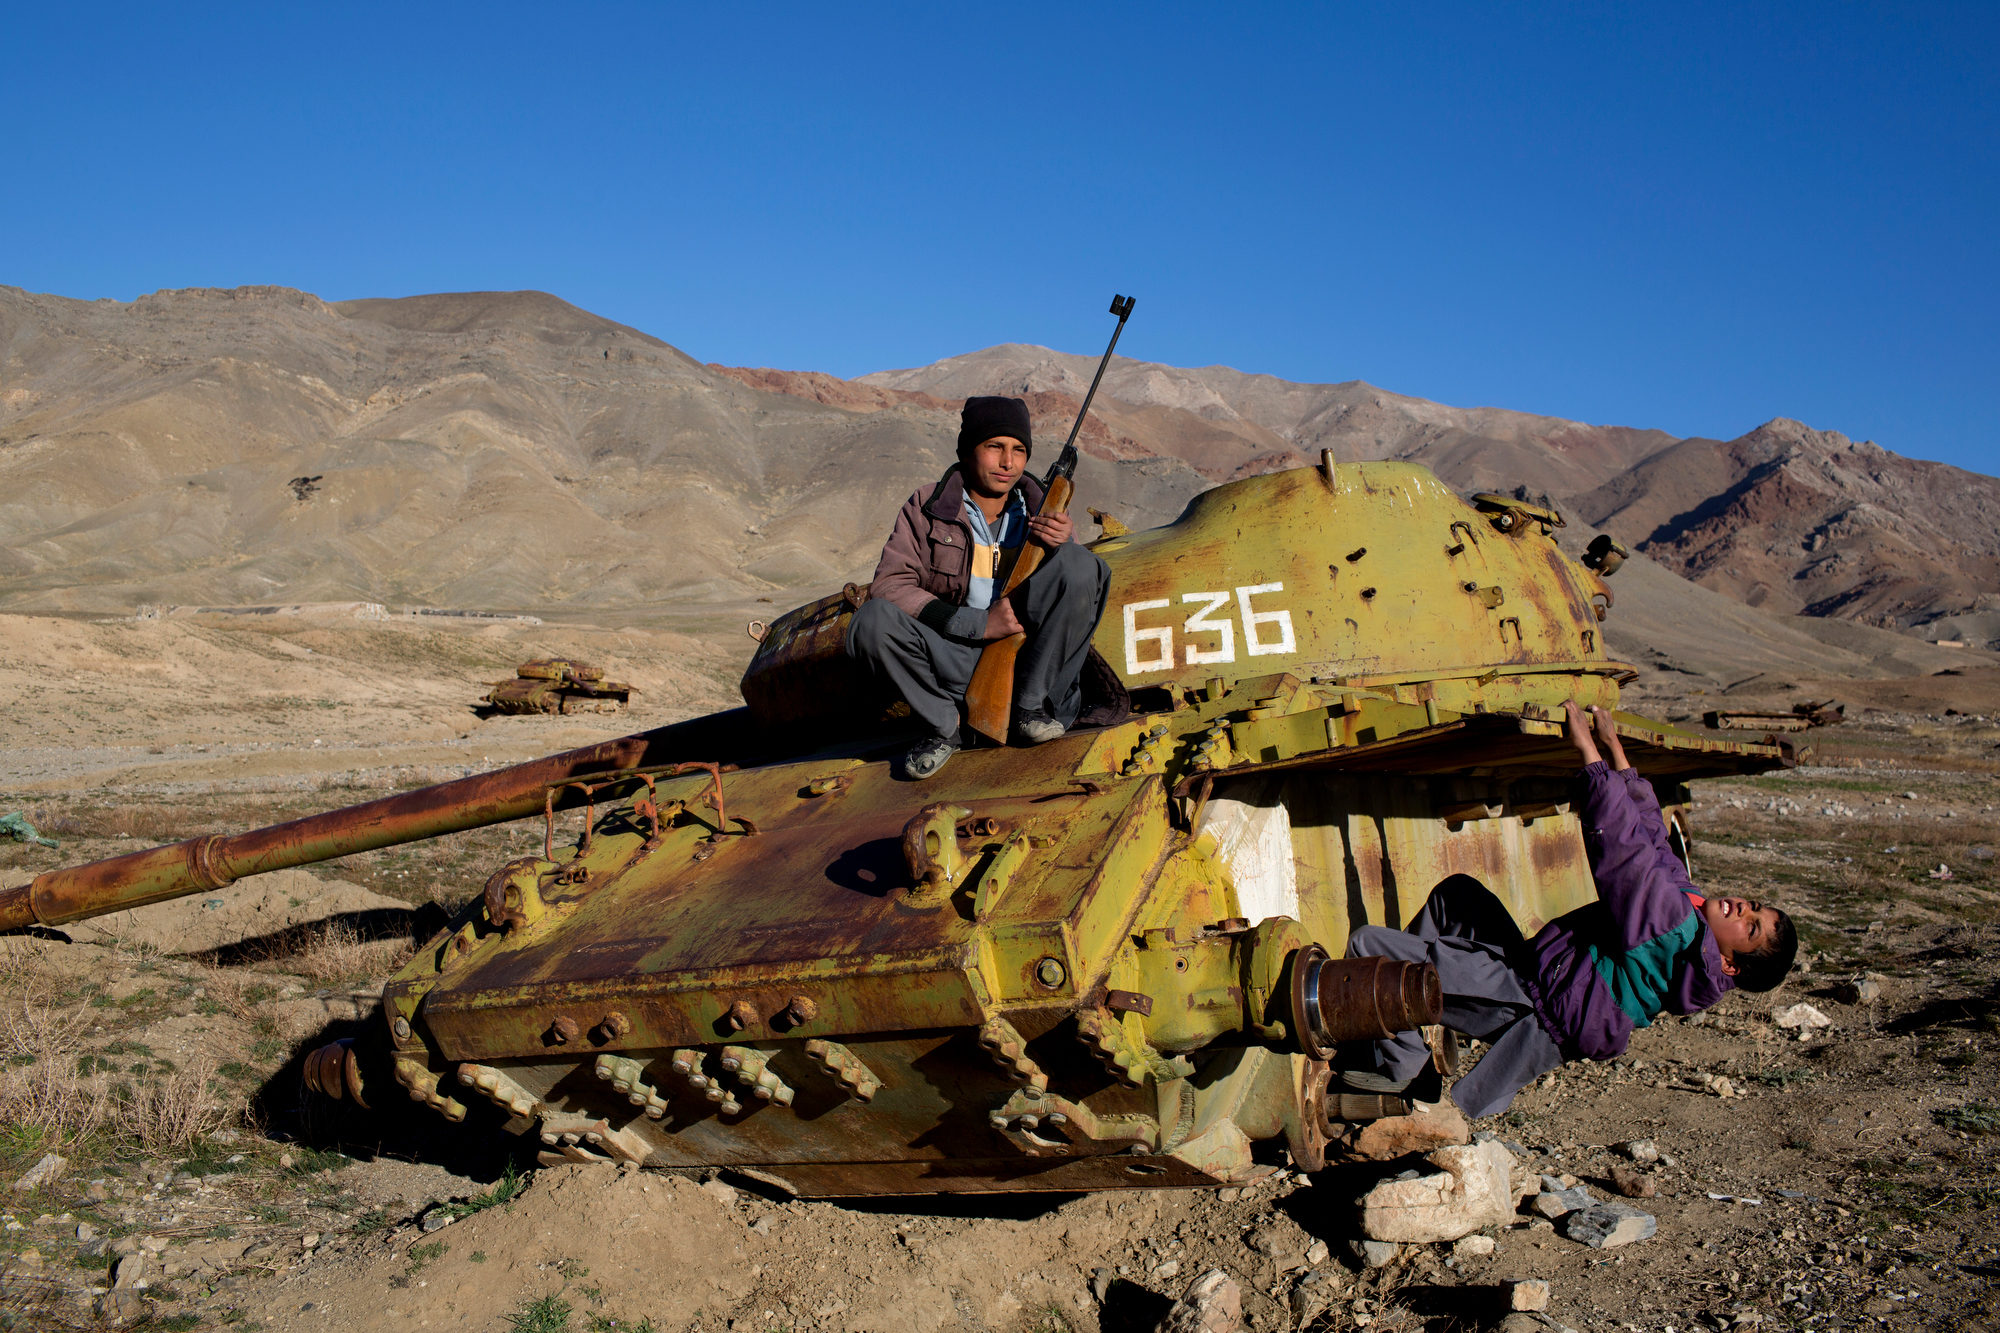 Panshir, Afghanistan The brothers Ahmed Agha, 12 years old, and Nazir Agha, 7 years old, are hunting birds before school starts. e eld they hunt in is full of old Russian tanks. Photo: Niclas Hammarstršm / Kontinent